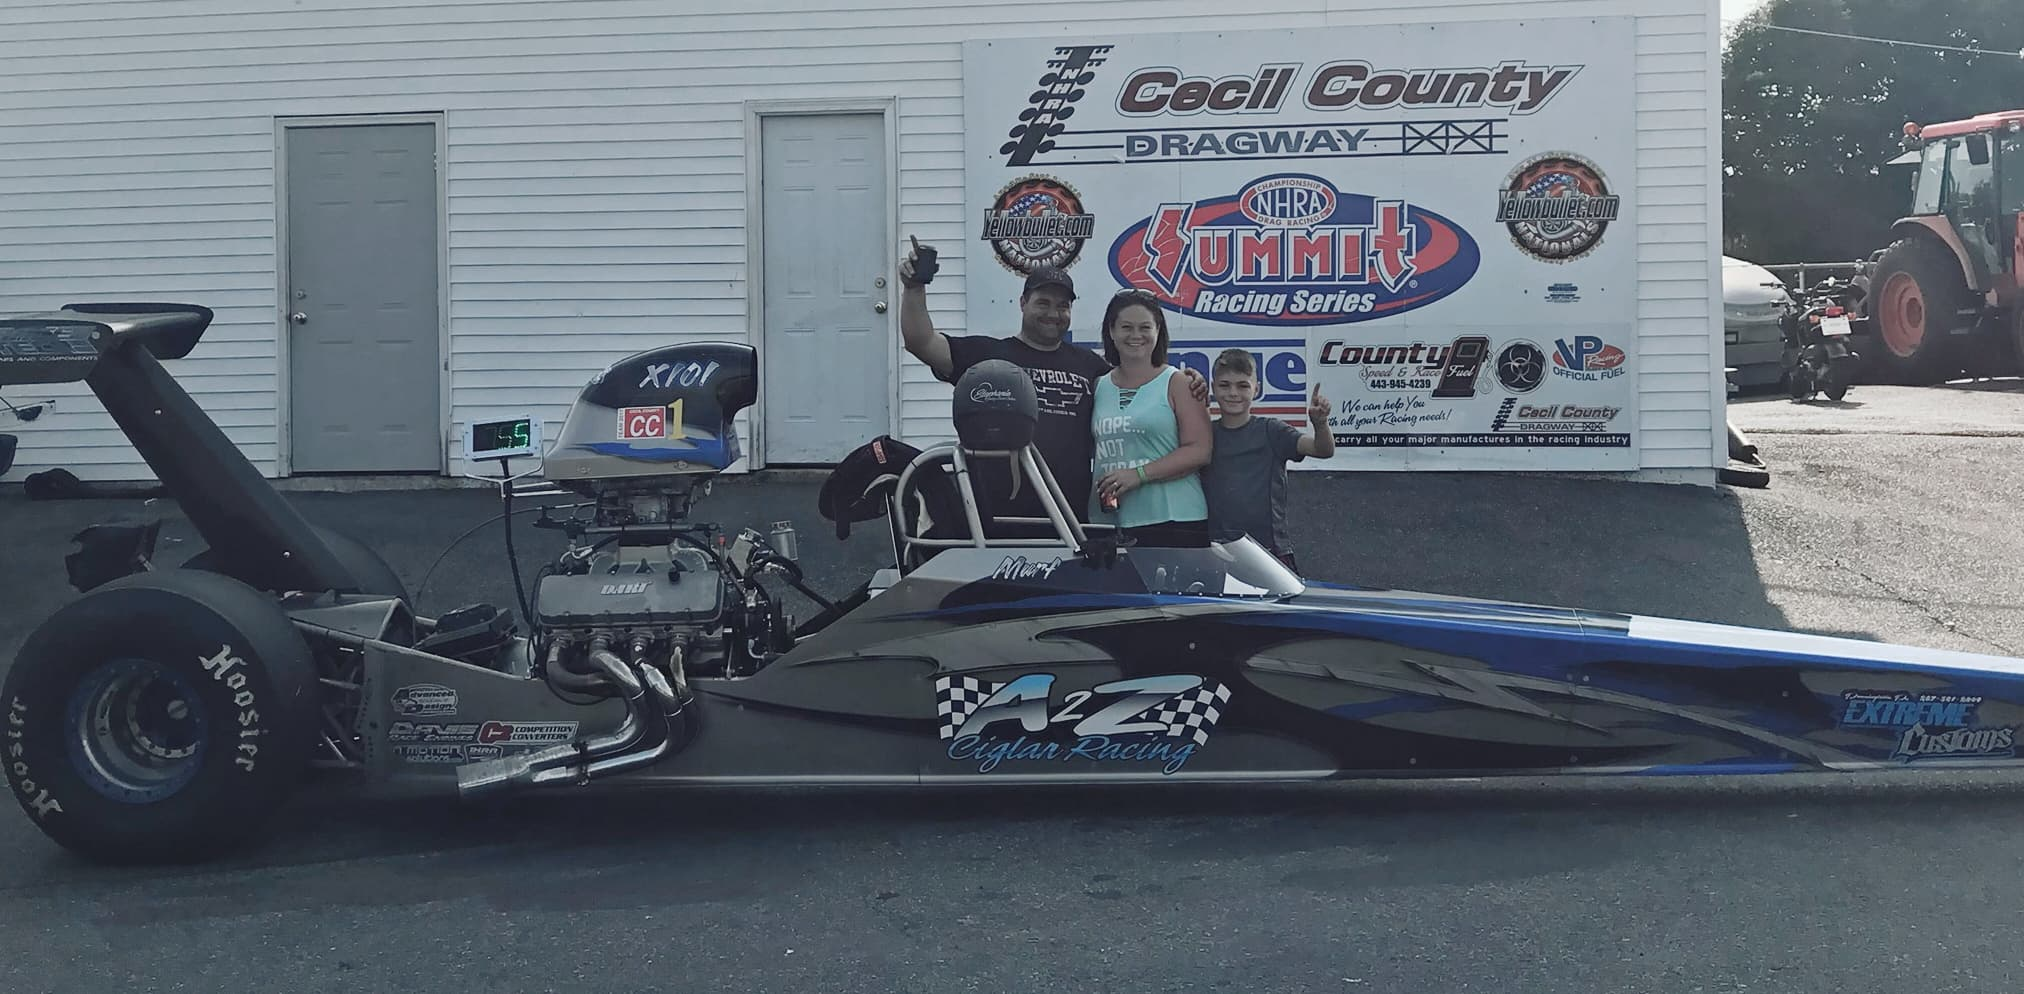 Bob Murphy Jr wins another Track Championship at Cecil County Dragway!